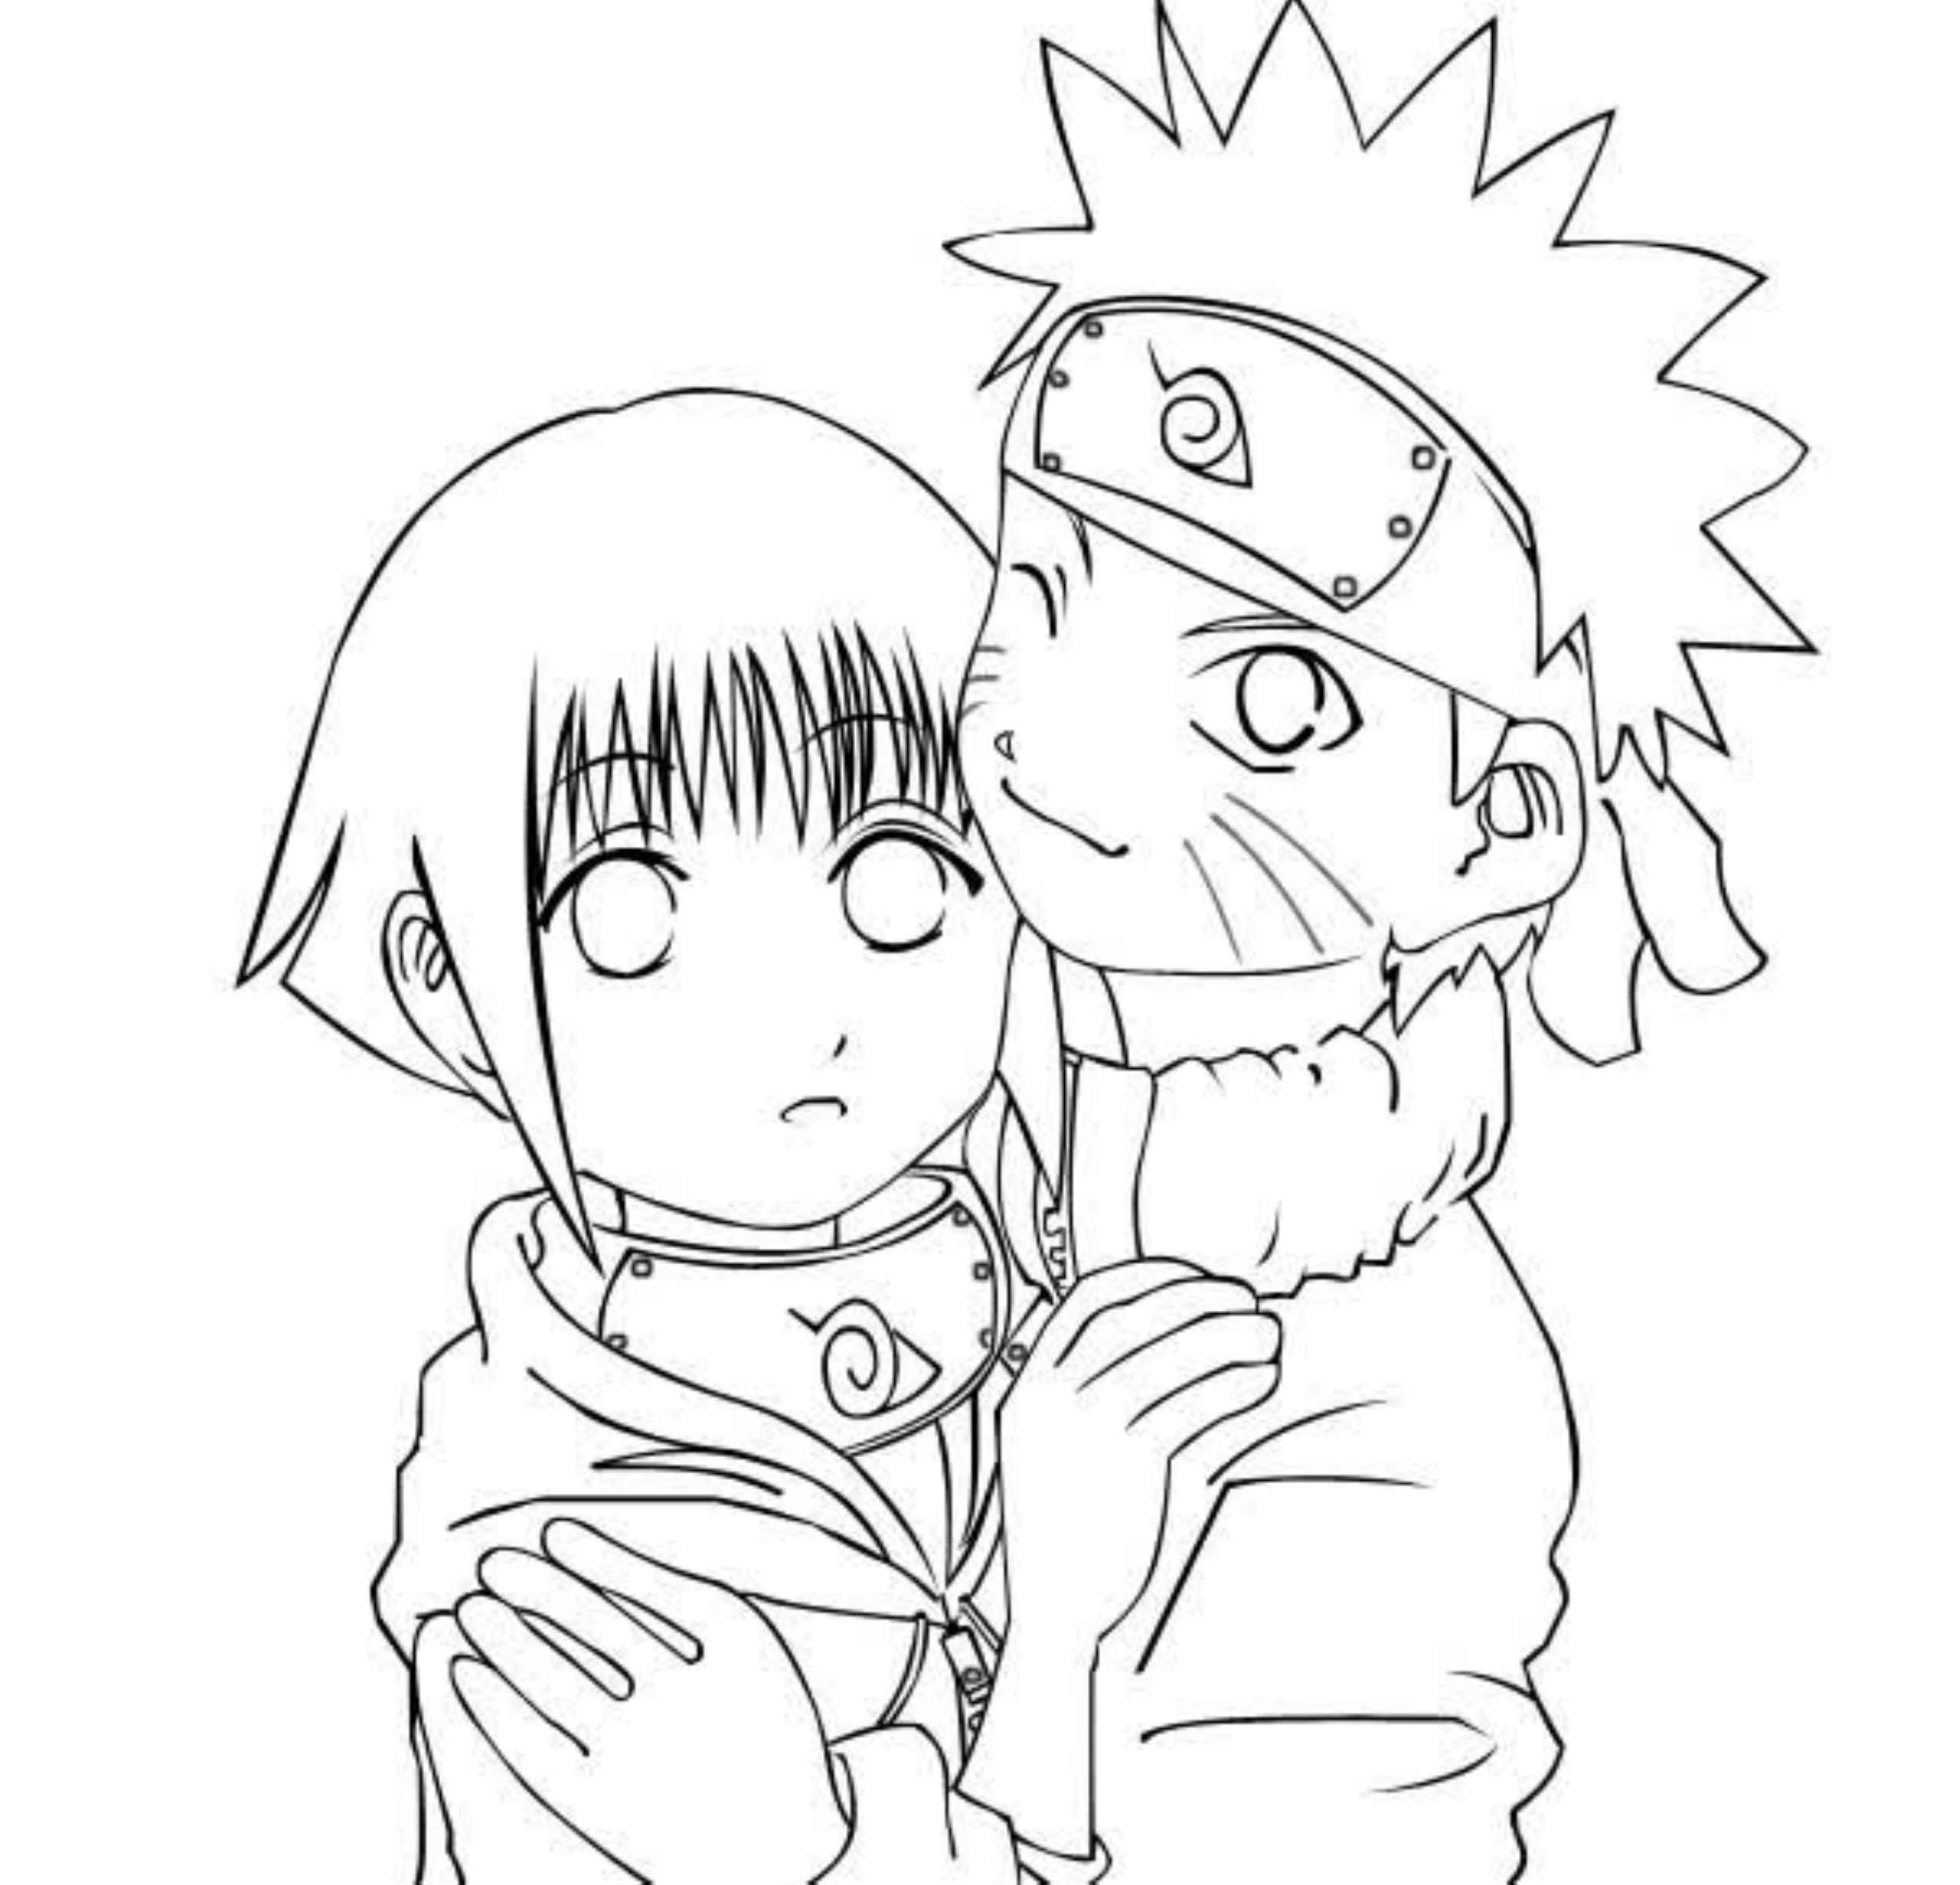 naruto coloring sheets best of chibi naruto coloring pages sugar and spice coloring sheets naruto